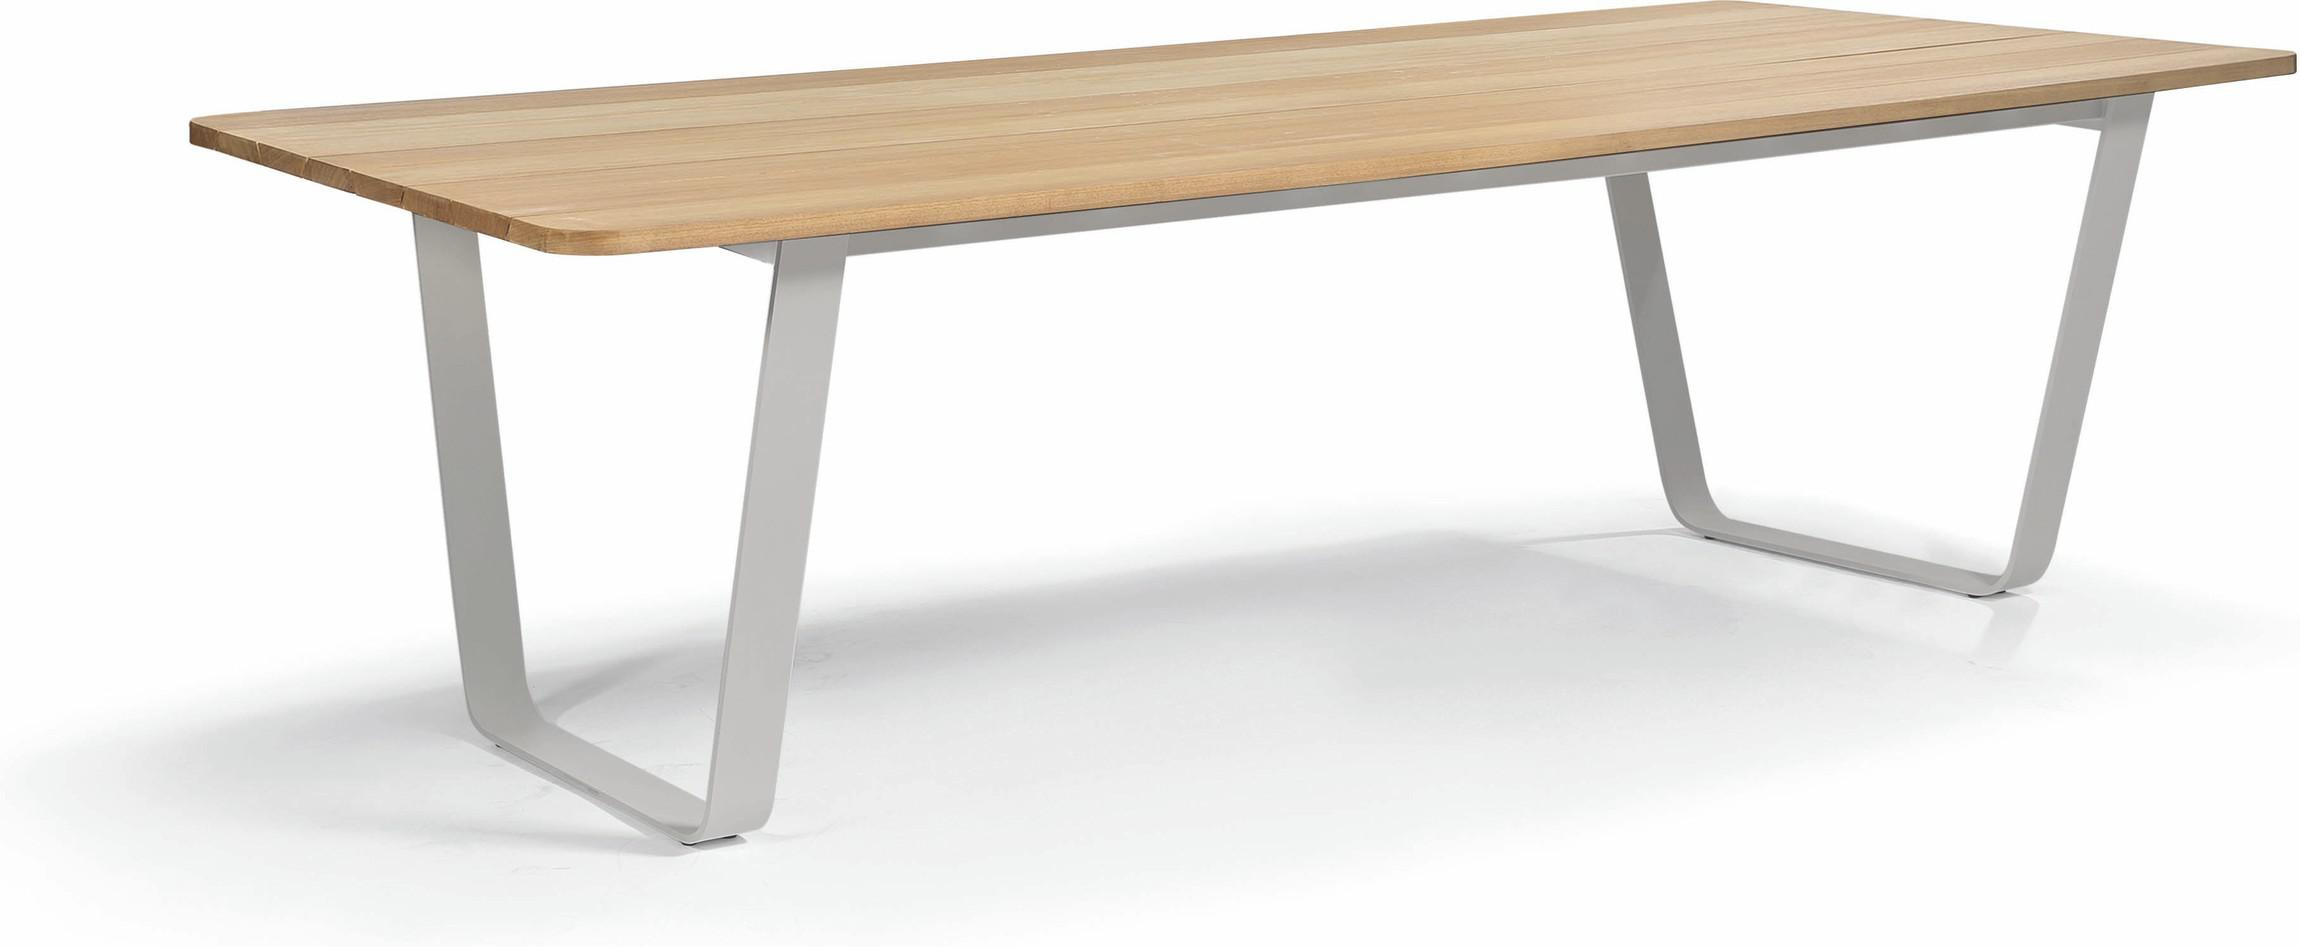 Eettafel Air - flint - Iroko 264